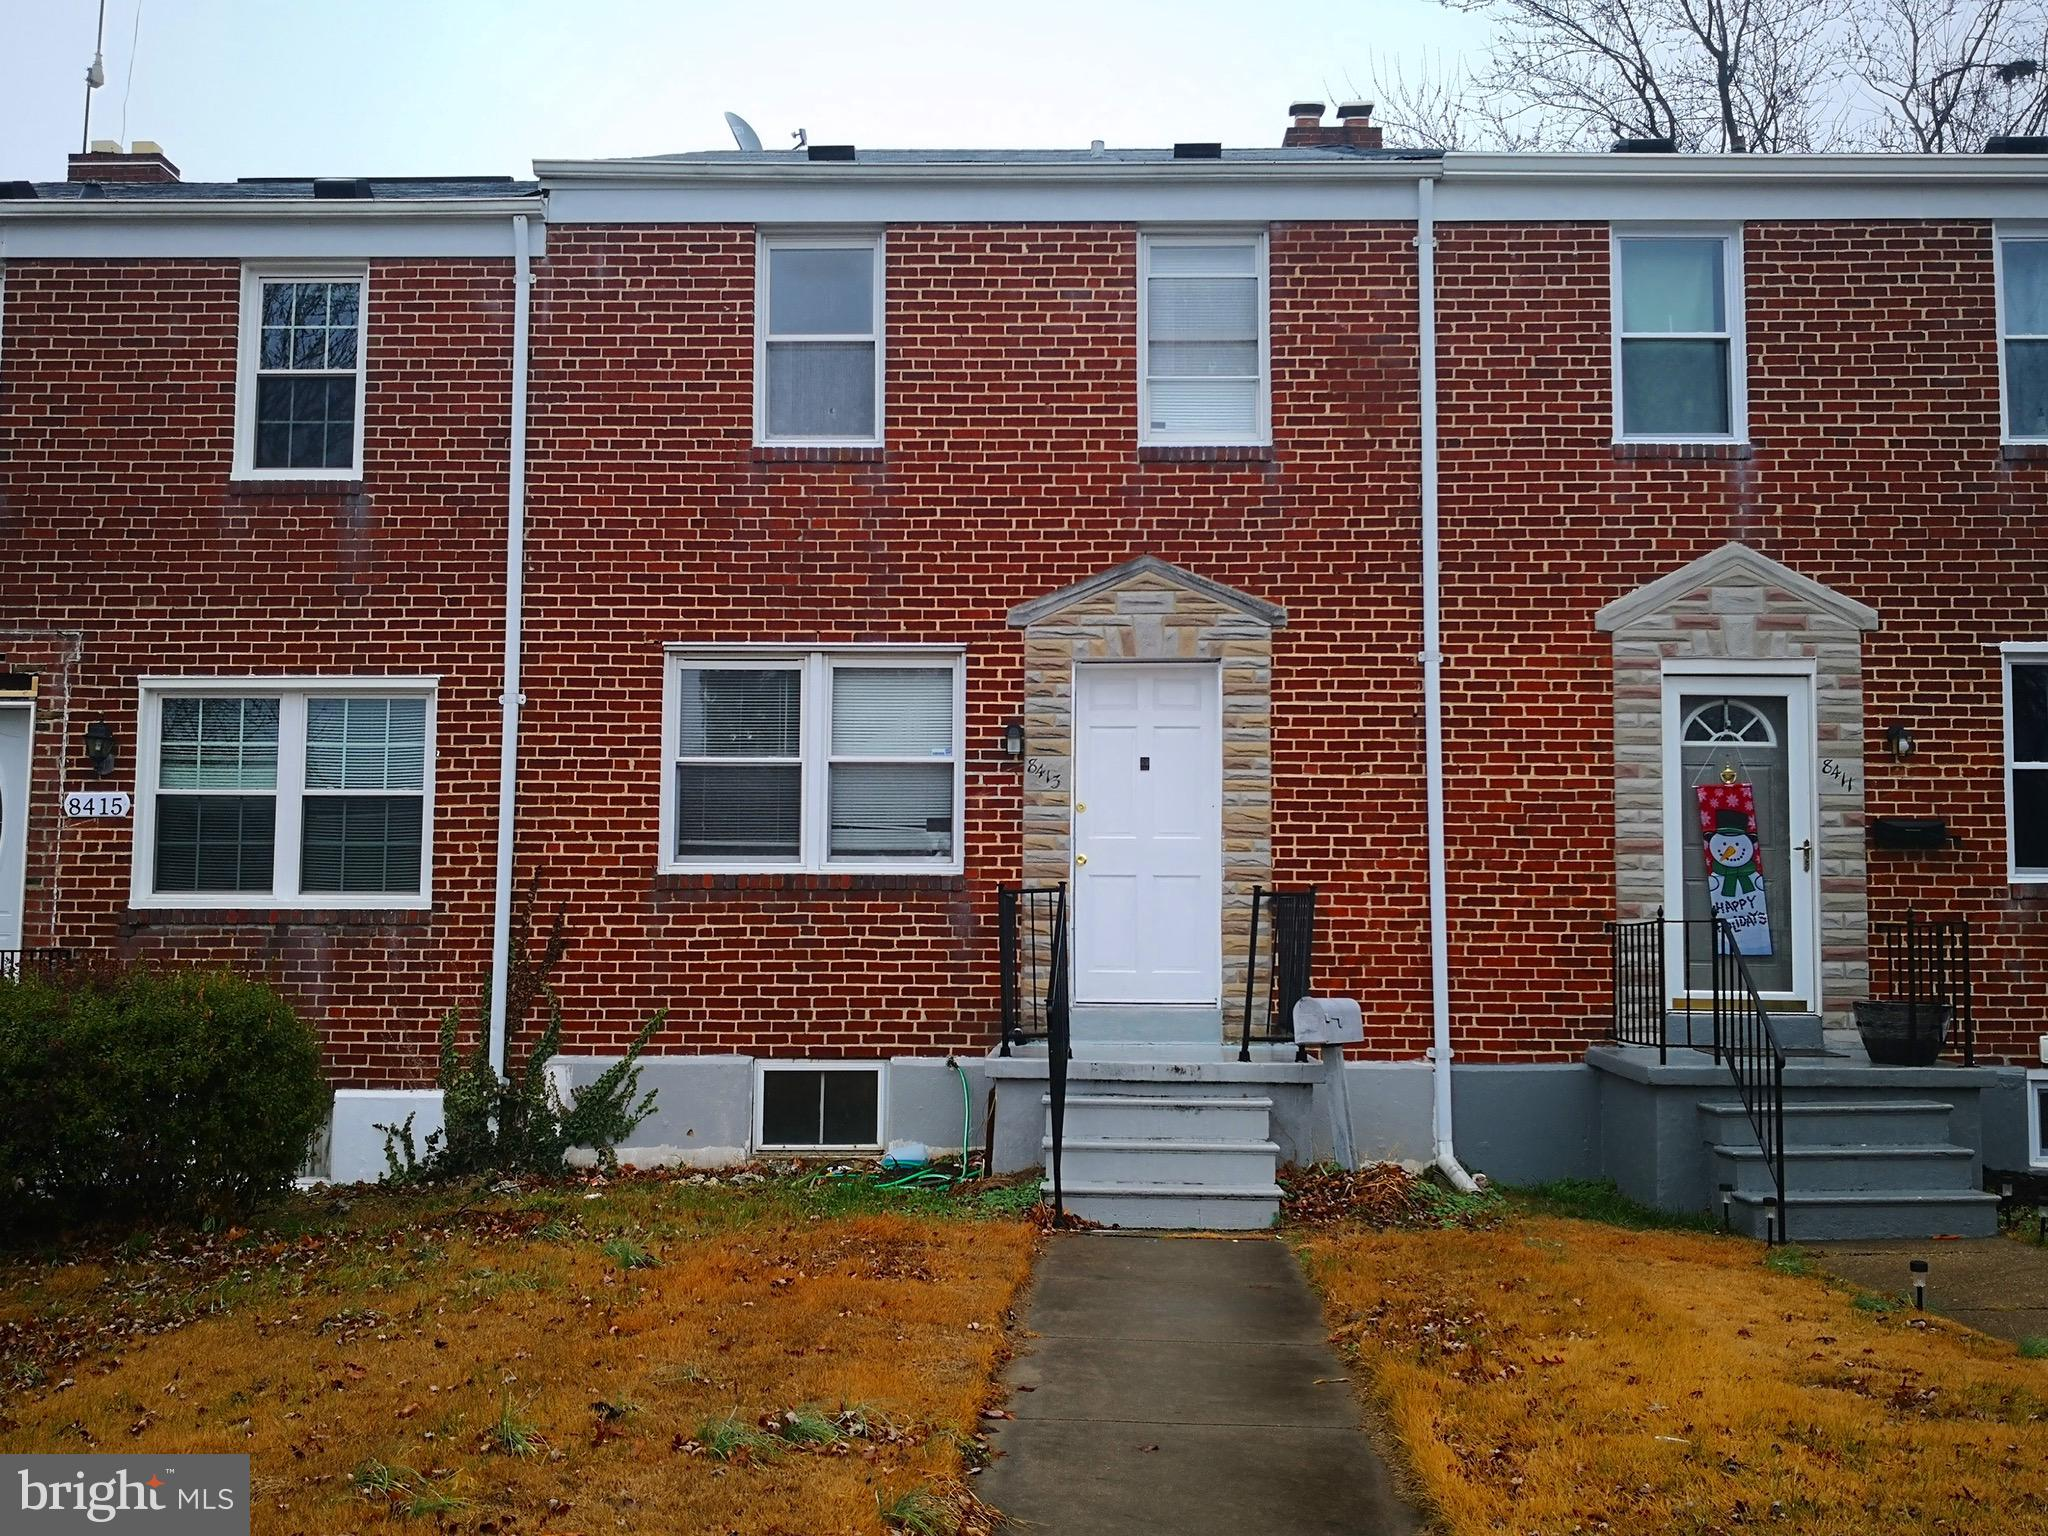 Back on market because the  loan didn't go through. Great location for living (close to Towson )  and investment properties. 3 bedrooms and 1.5 baths brick townhouse for sale. Finished basement. Solid condition and needs some work. Sold as-is.